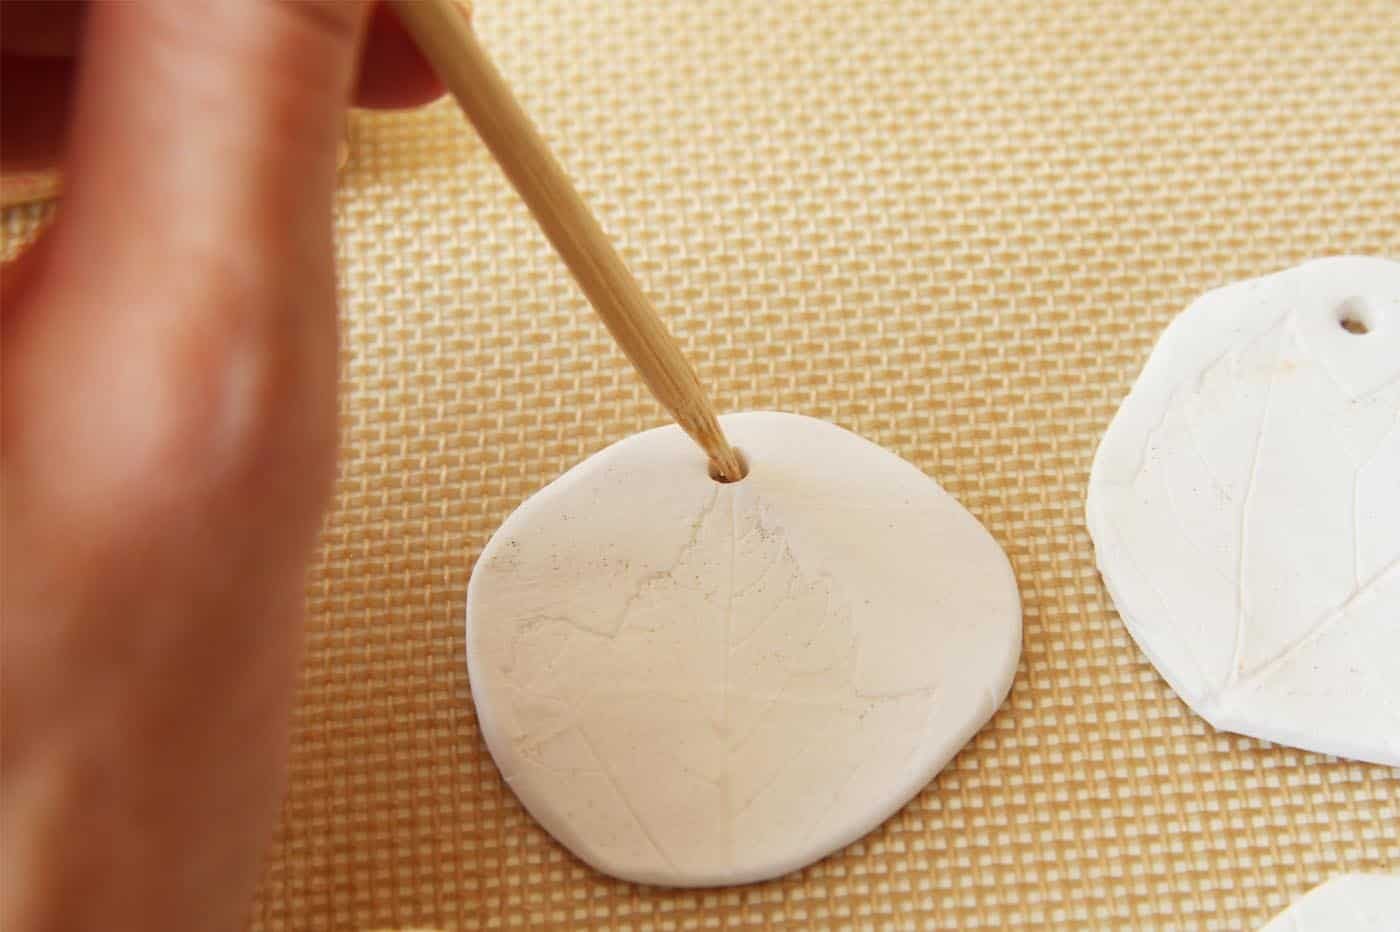 Poke a hole in the top of your clay gift tag